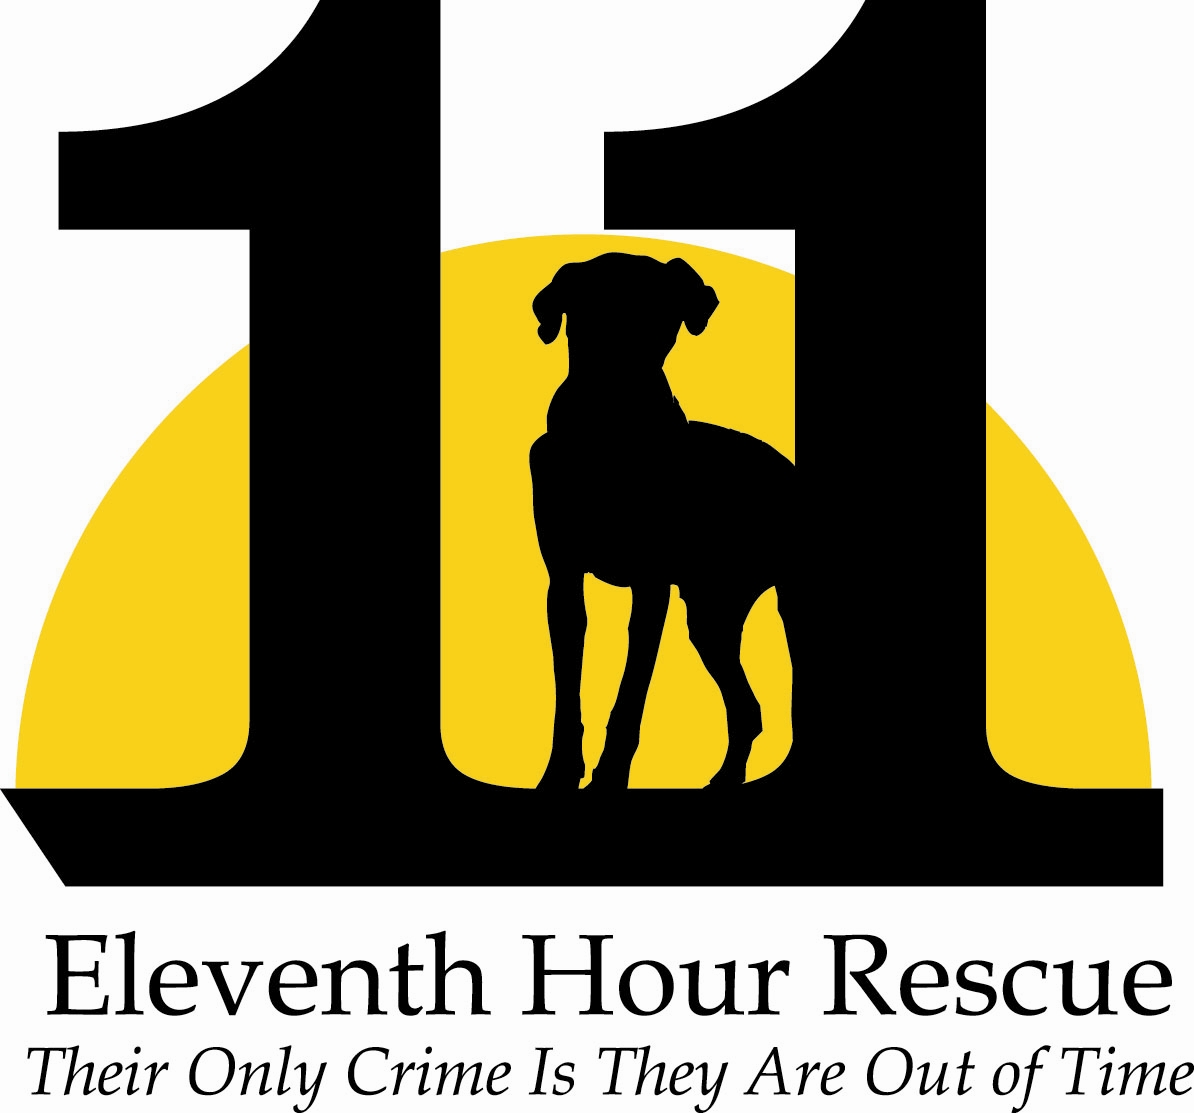 The eleventh hour clipart #17